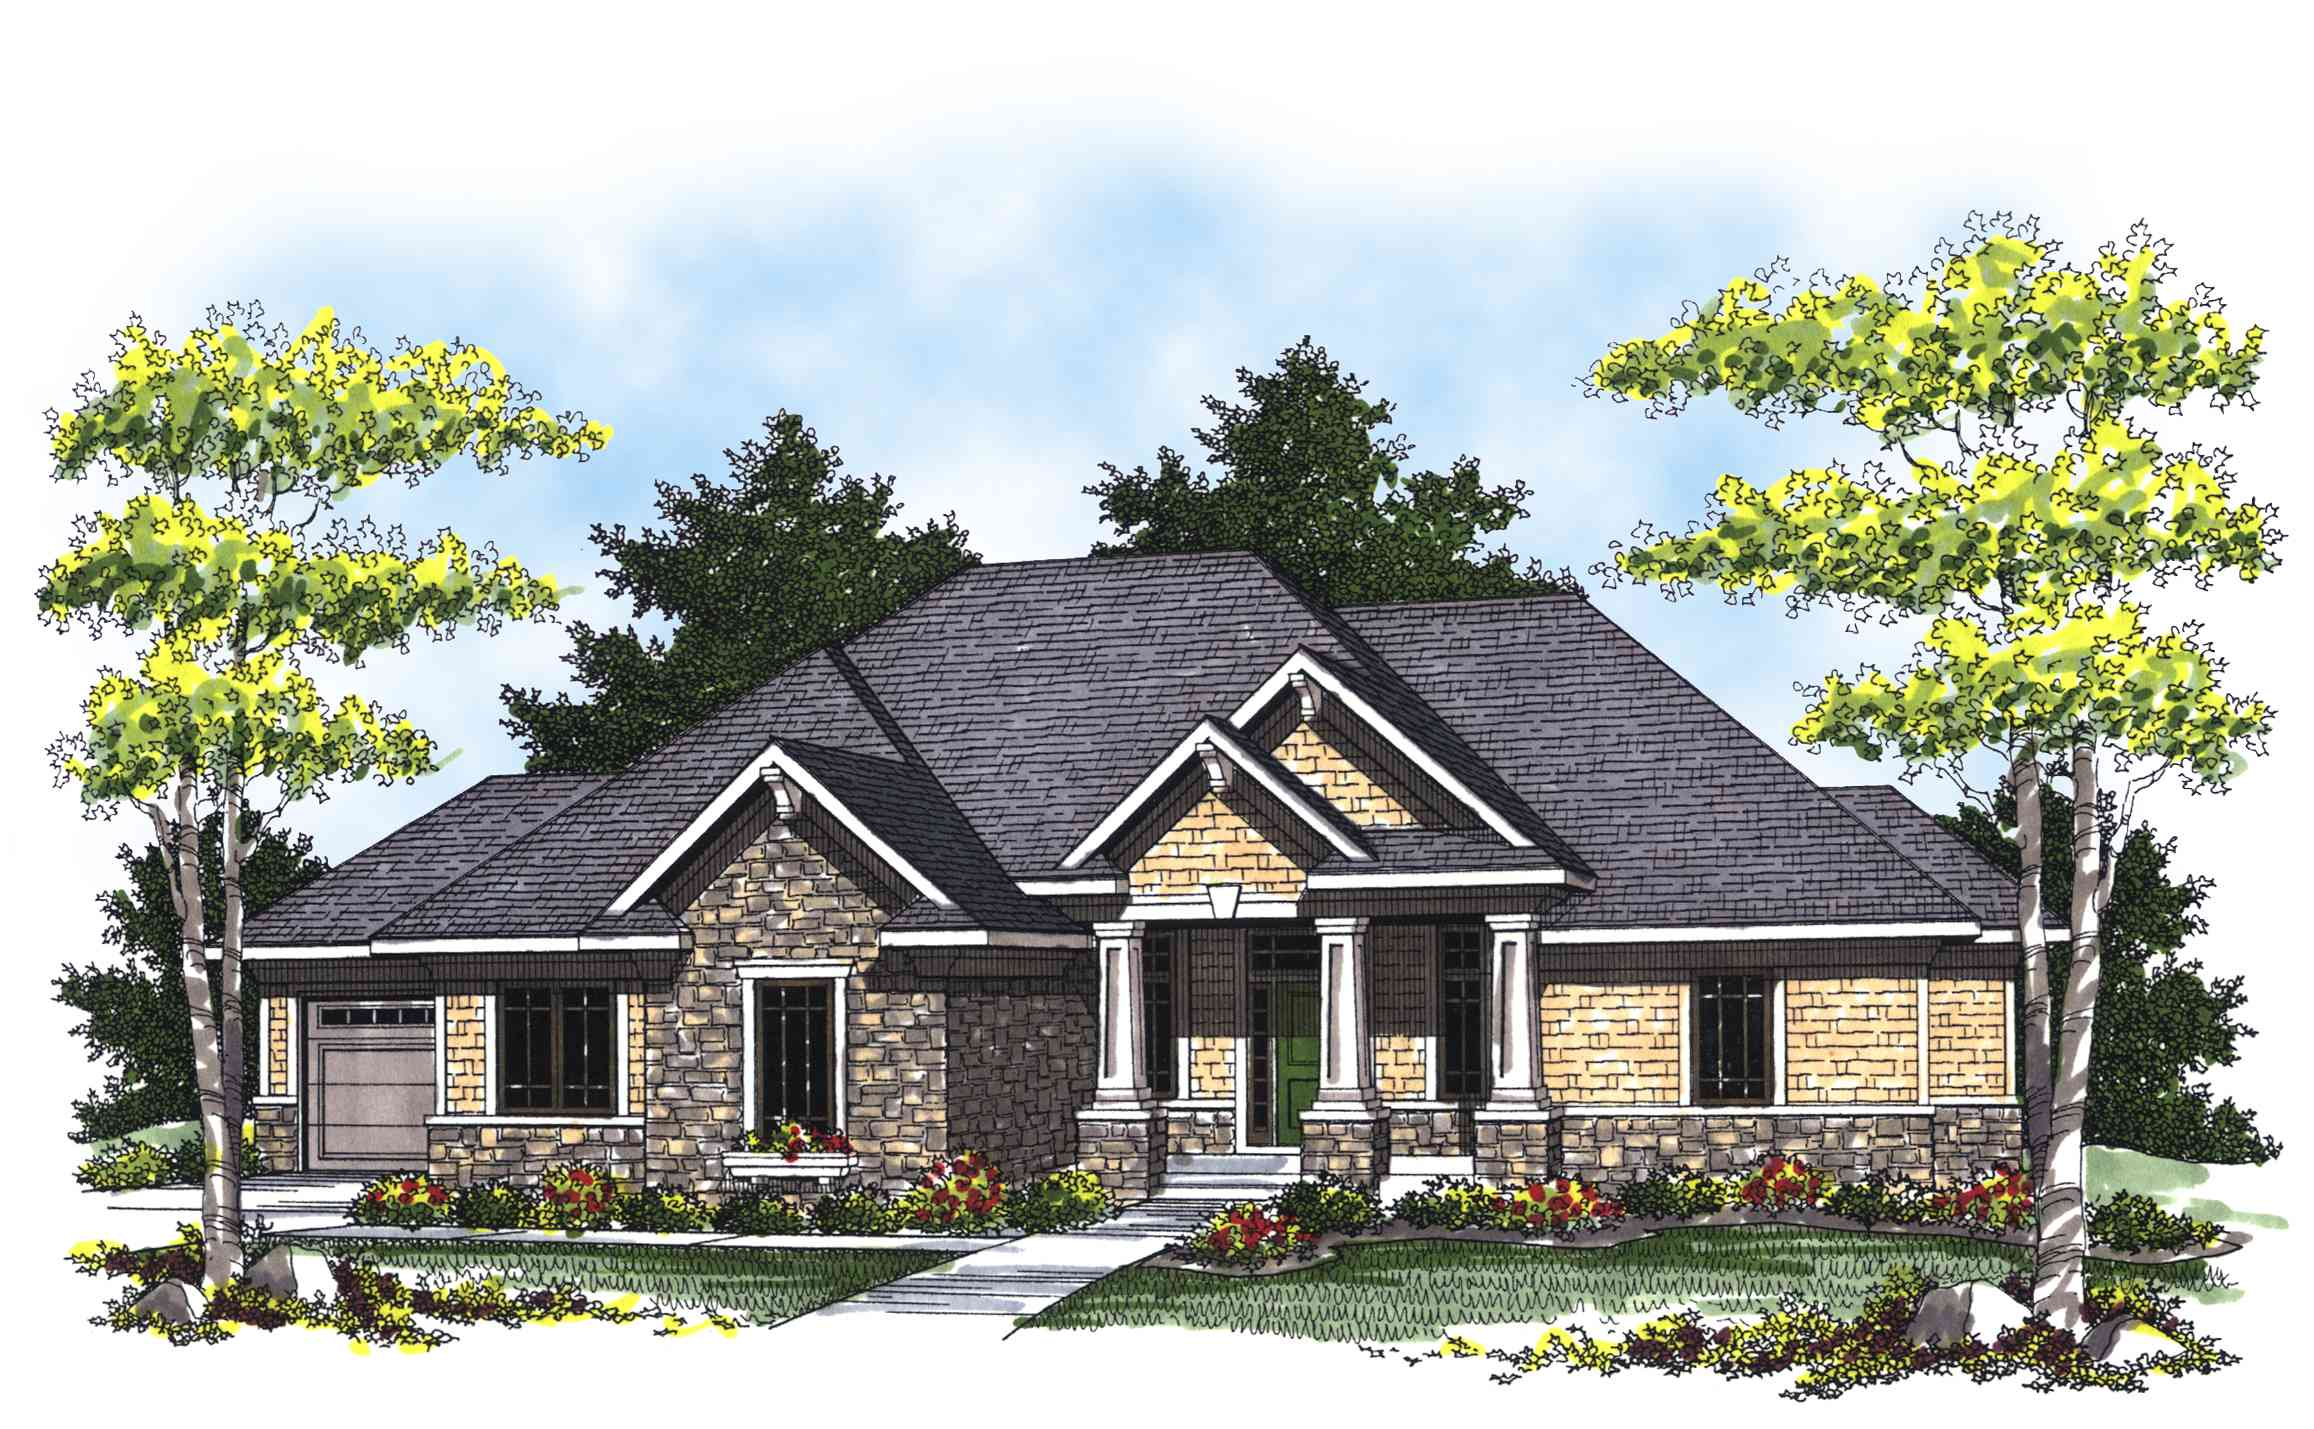 89291ah_1479212400 Ranch House Designs Expansive Windows on ranch house layout design, ranch house patio design, ranch house front deck design, ranch house remodel design, ranch house interior design, ranch house entrance design, ranch house porch design,